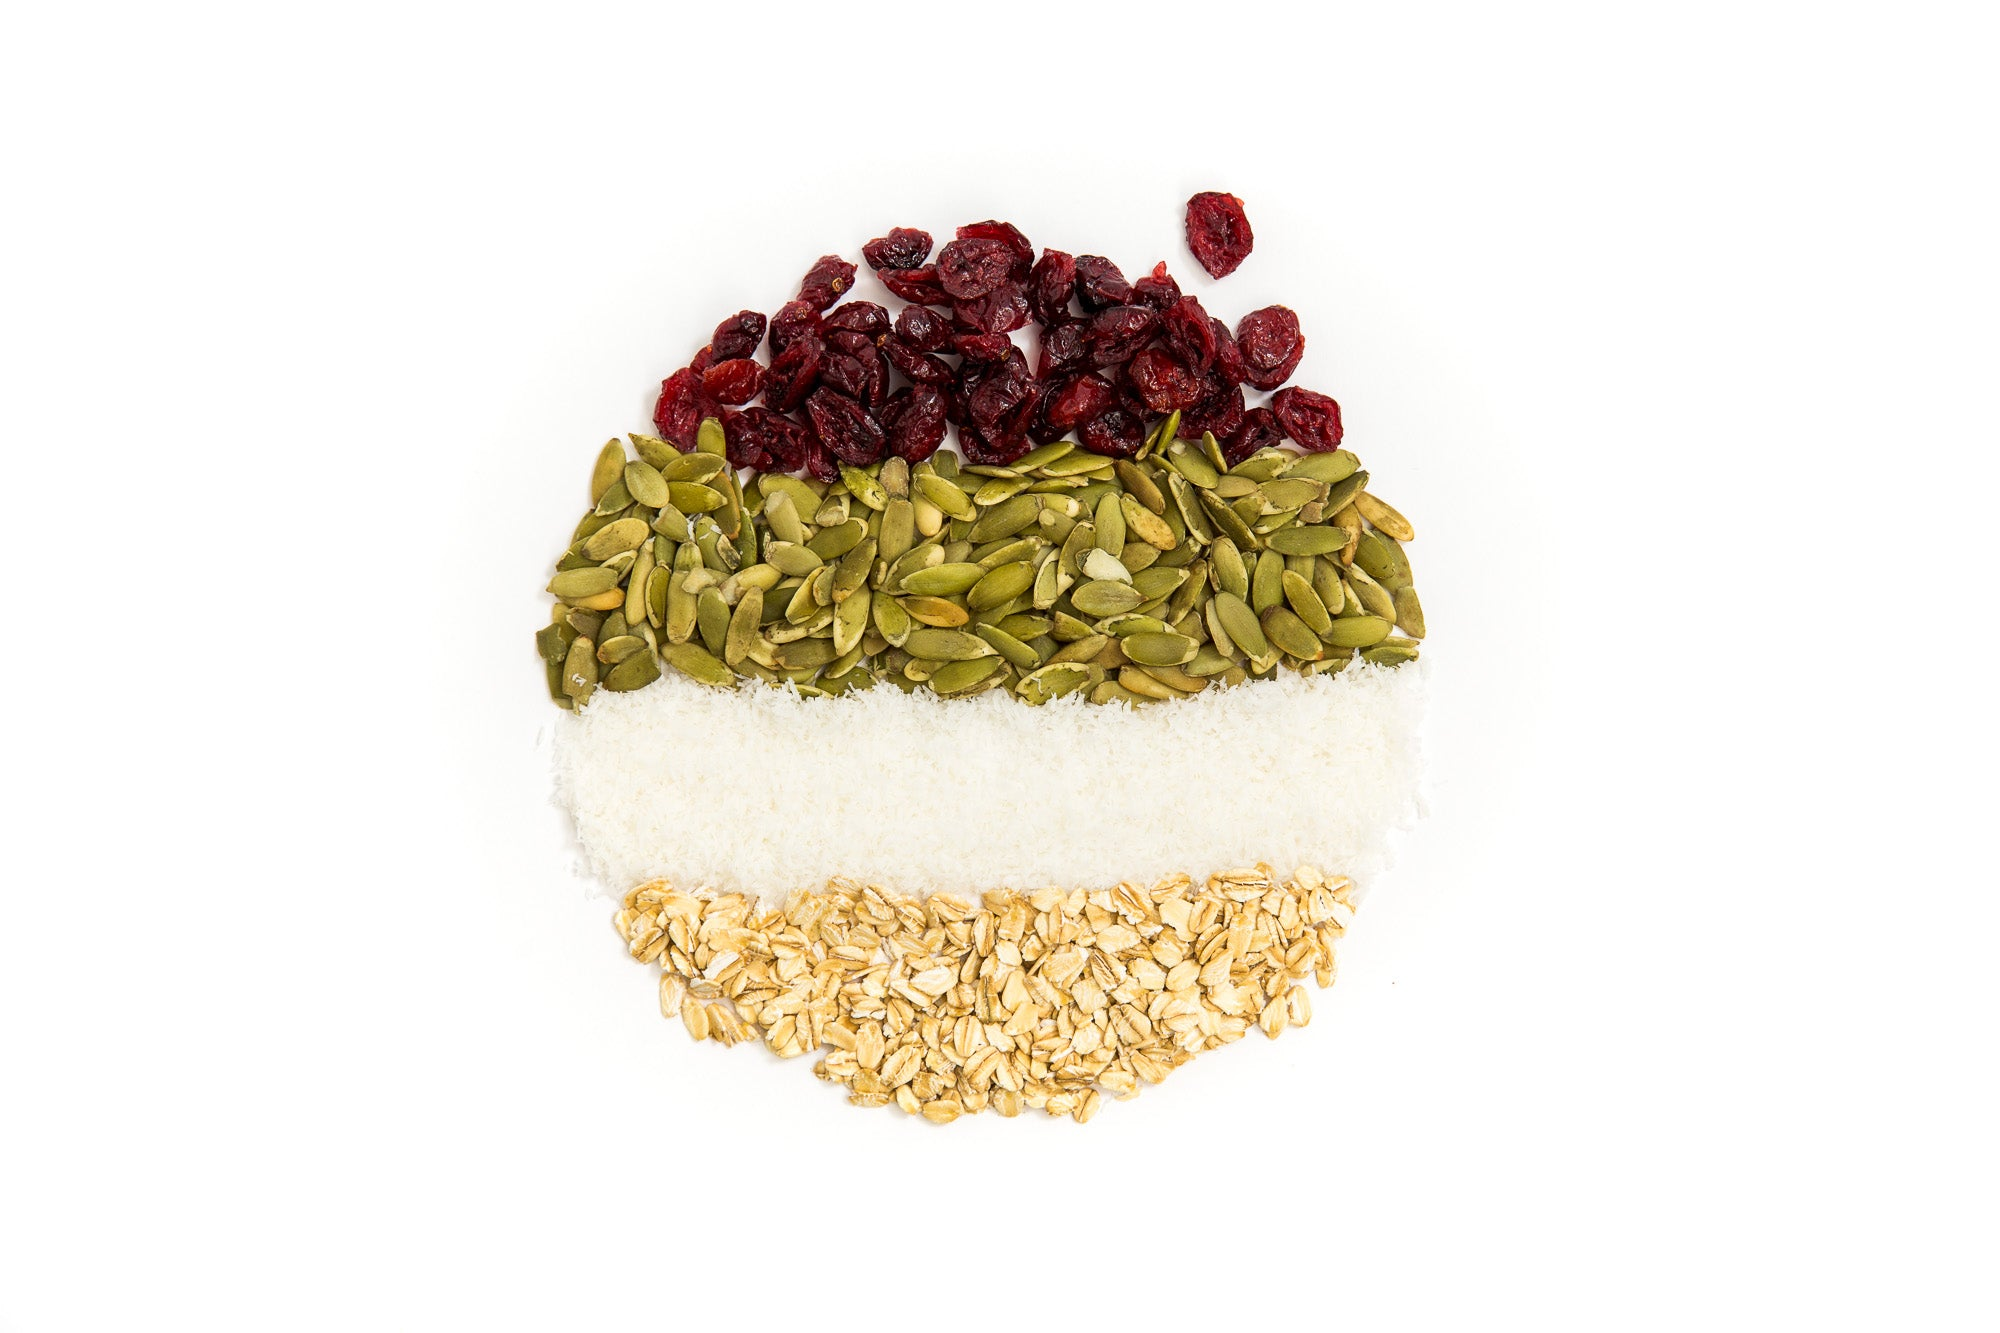 Image of cranberries, pumpkin seeds, coconut flakes and oats placed in lines to form a circle used for Miss Jones Baking Co Happy Trails Mix Cookie Bites recipe